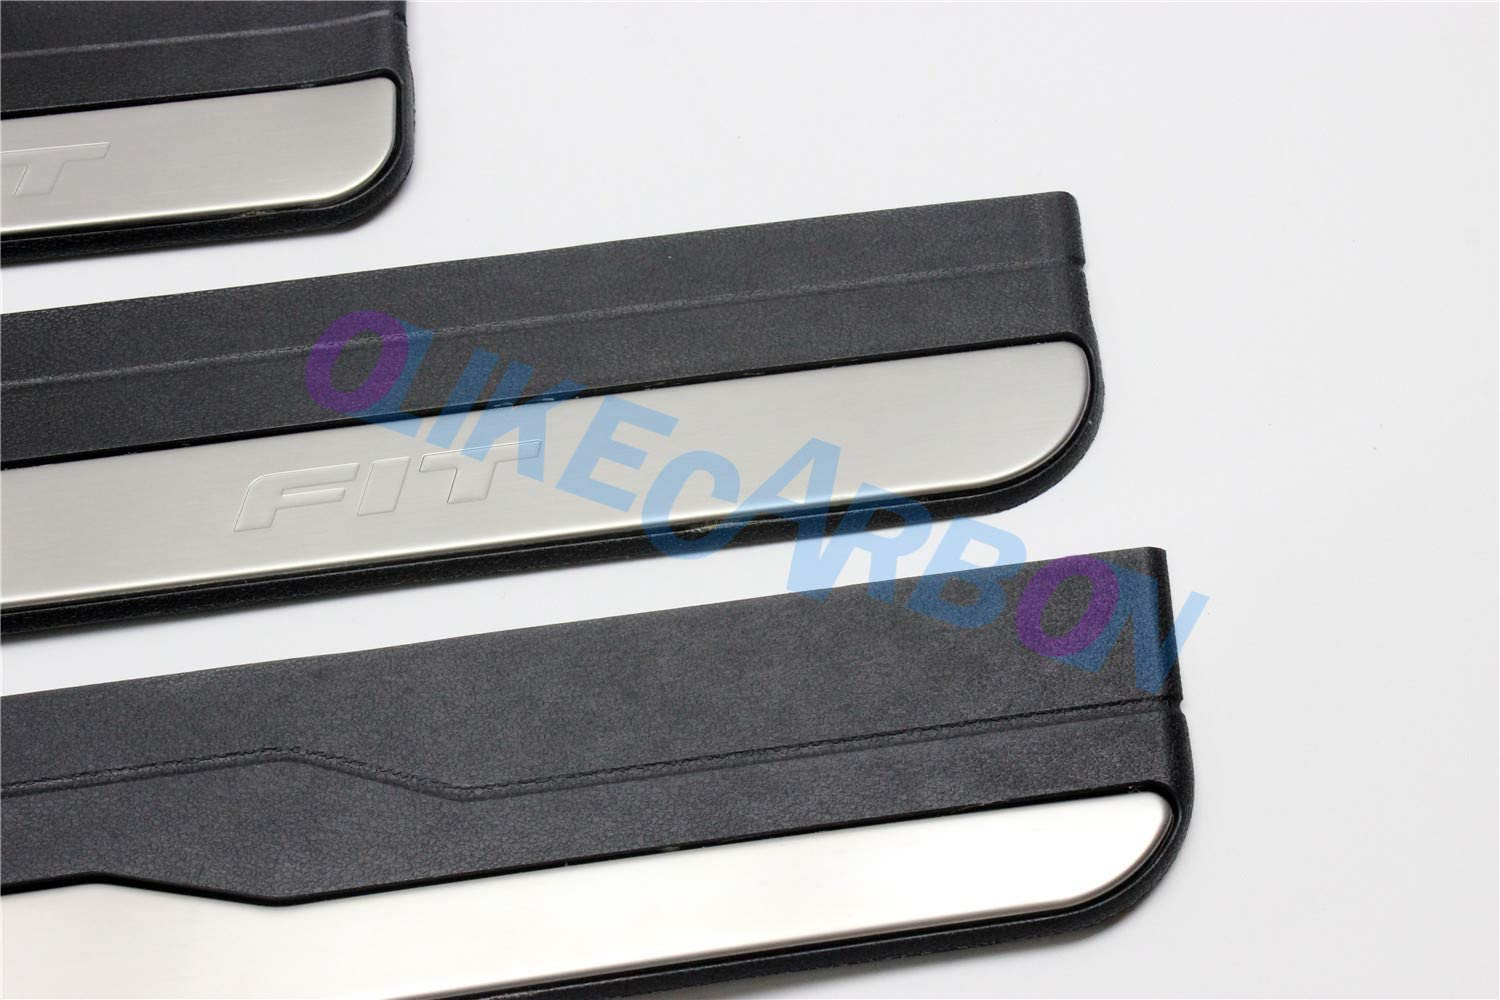 Stainless Steel Door Sill Scuff Plate Guard Fit 4pcs for Honda Fit 2014-2016